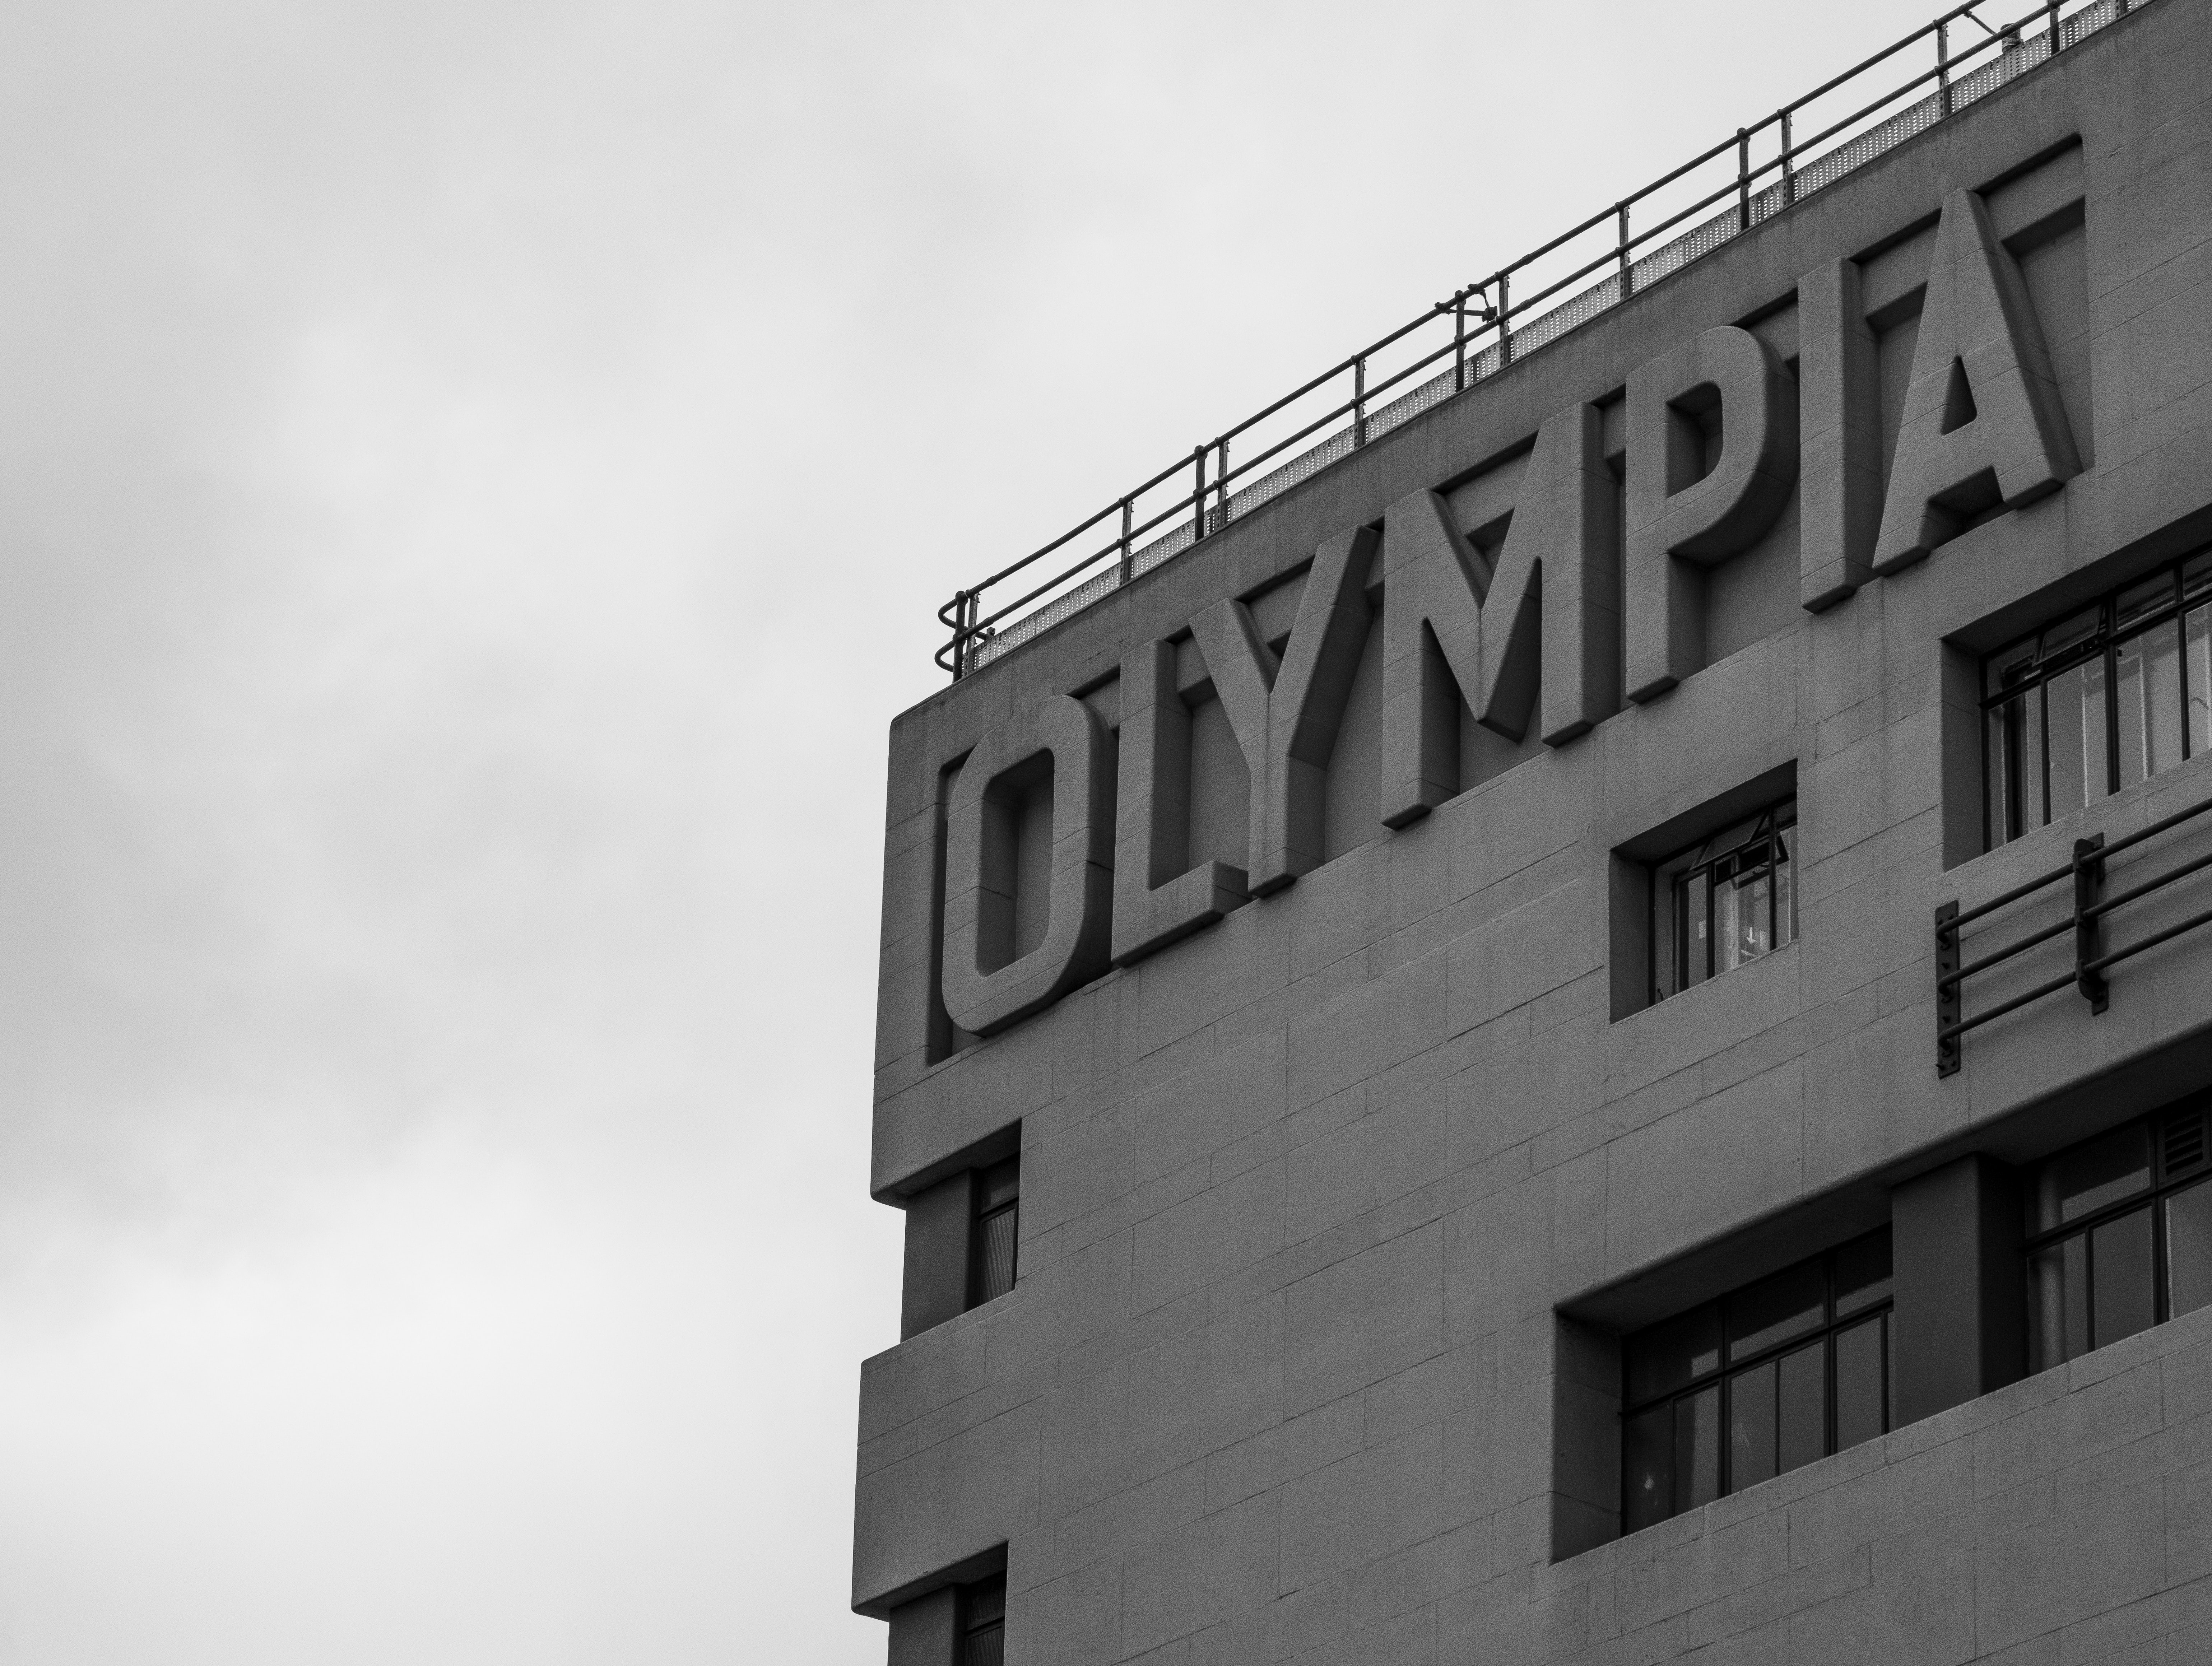 Goodbye Old Olympia Credit the-blowup via unsplash